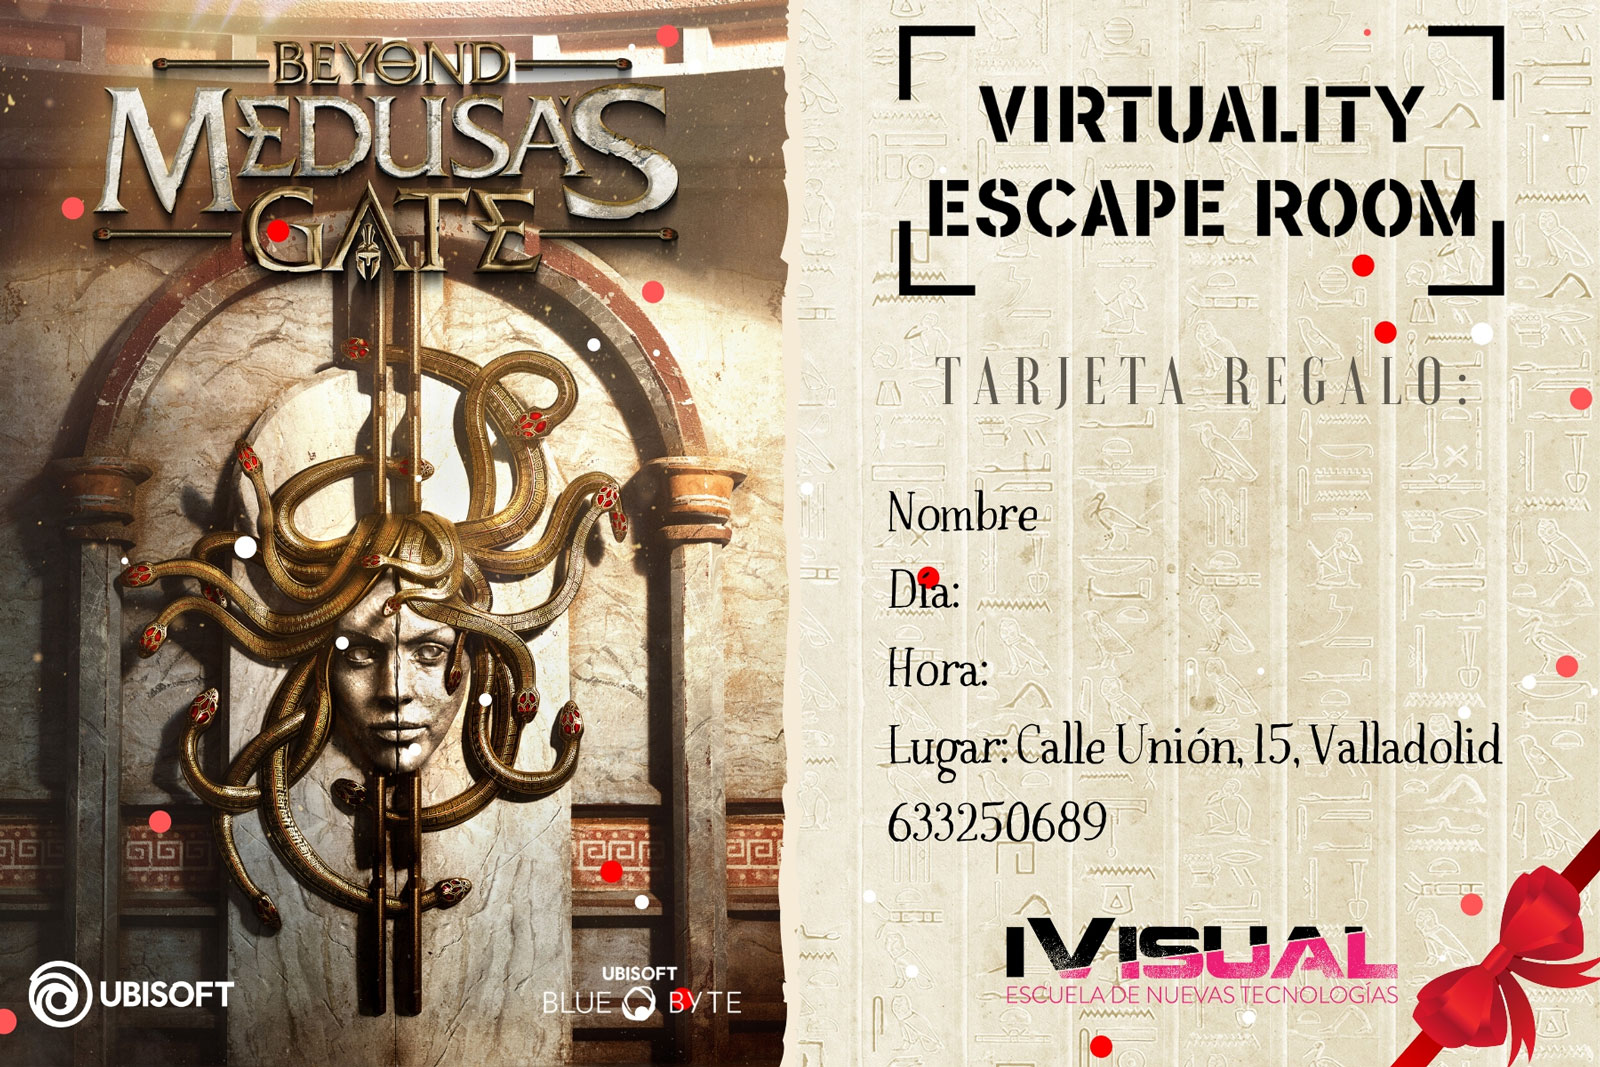 Tarjeta-regalo-Beyond-Medusas-Gate-Virtuality-Escape-Room